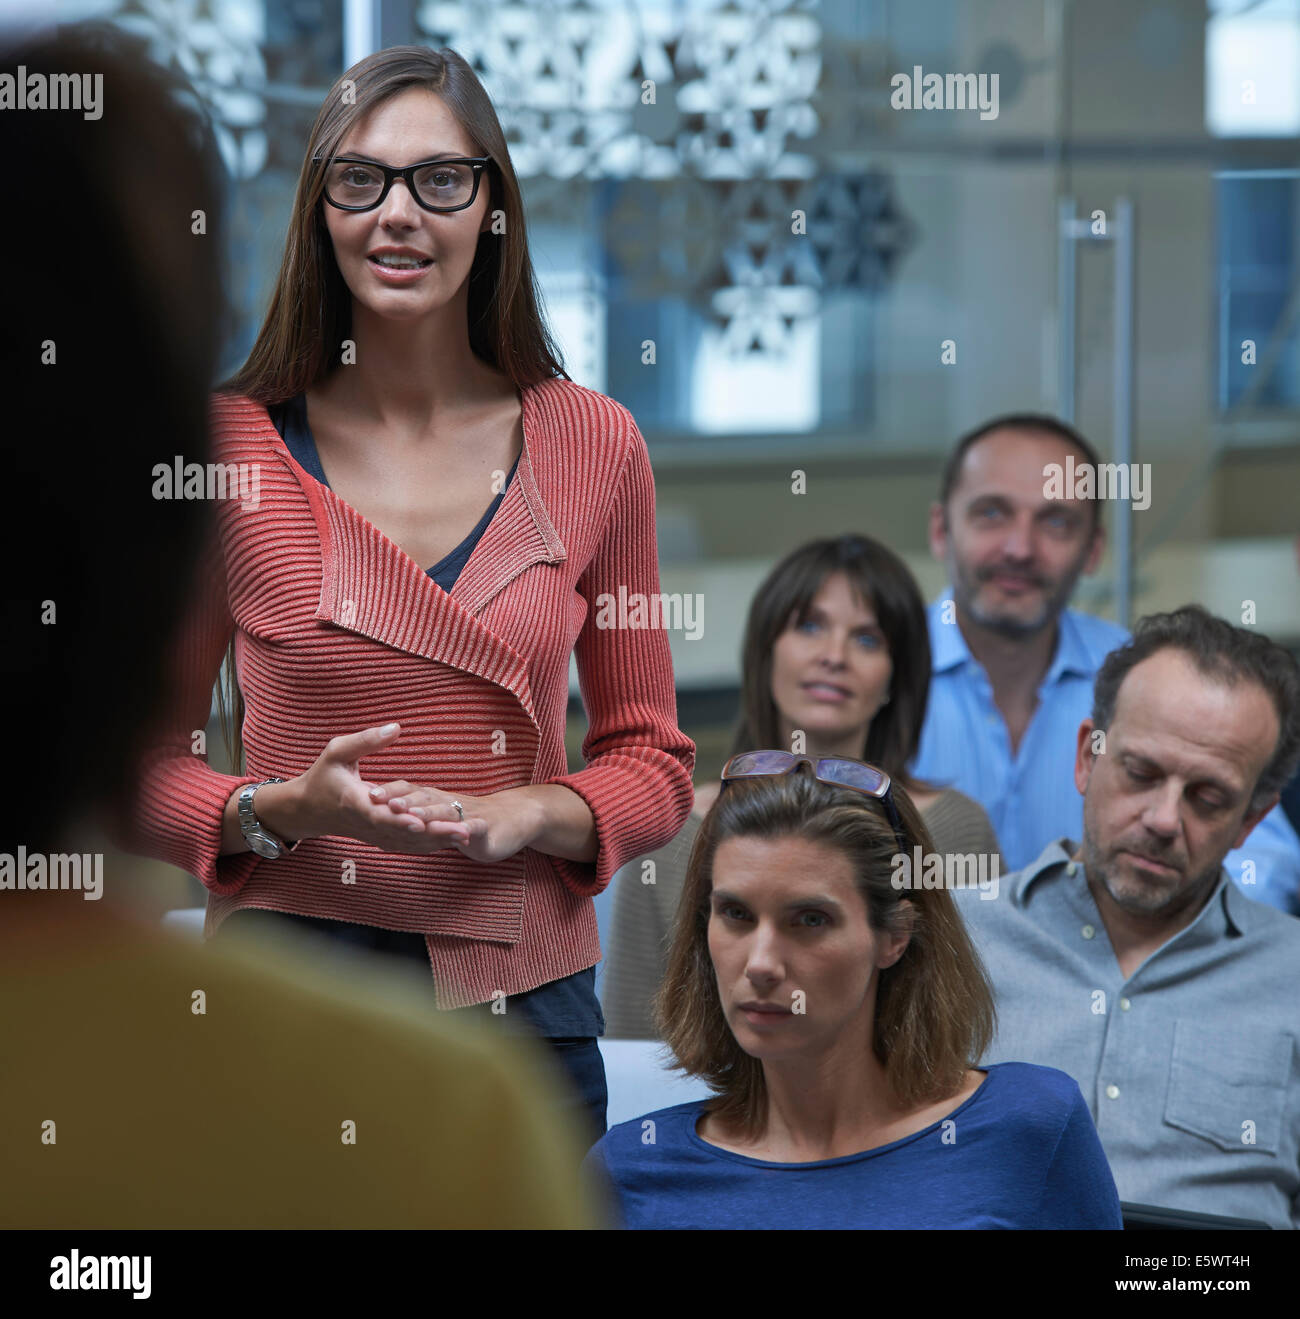 Woman standing in middle of group - Stock Image